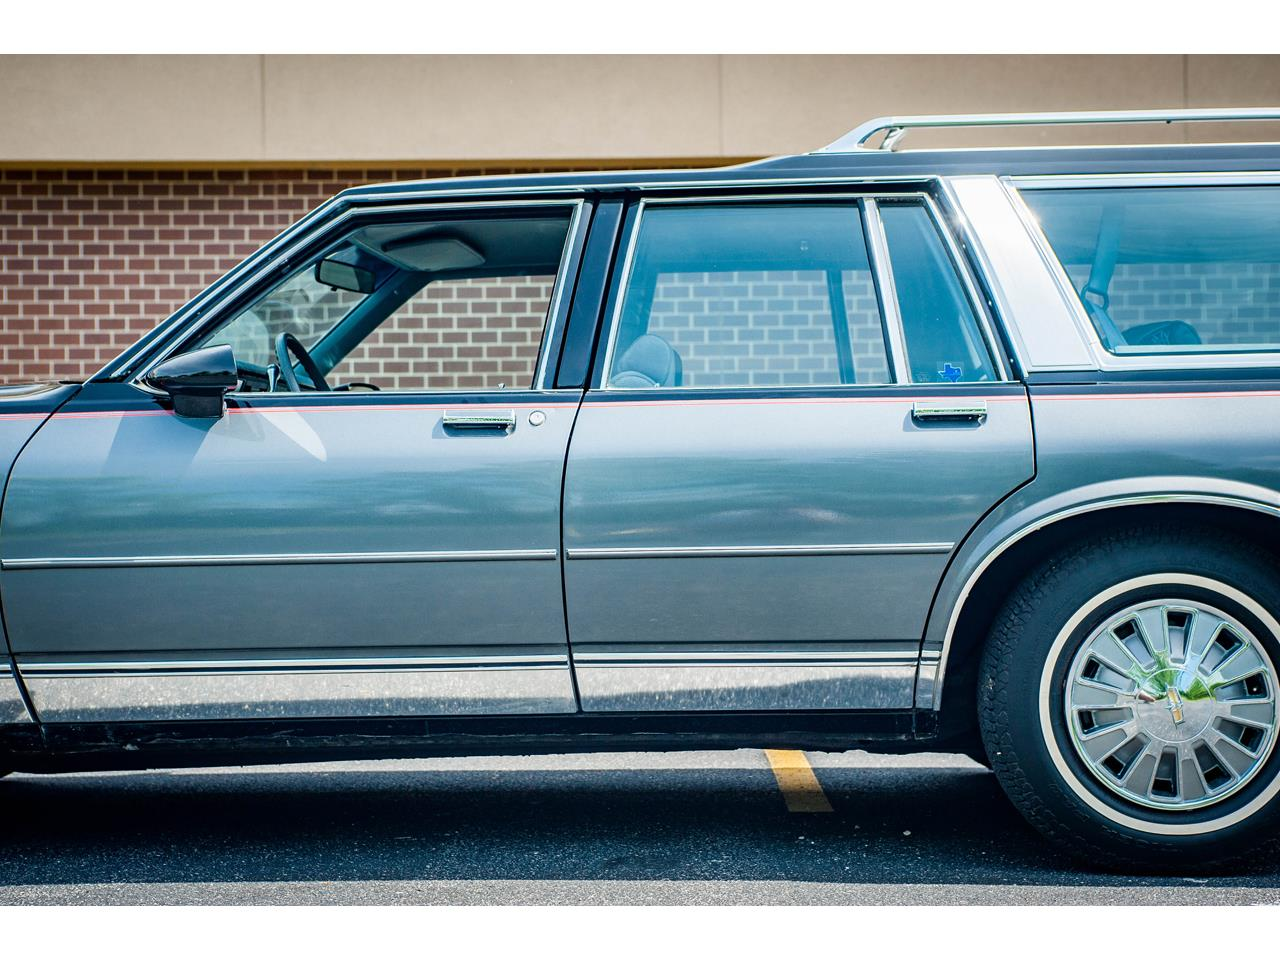 Large Picture of '89 Caprice located in Illinois - $17,995.00 Offered by Gateway Classic Cars - St. Louis - QB9K